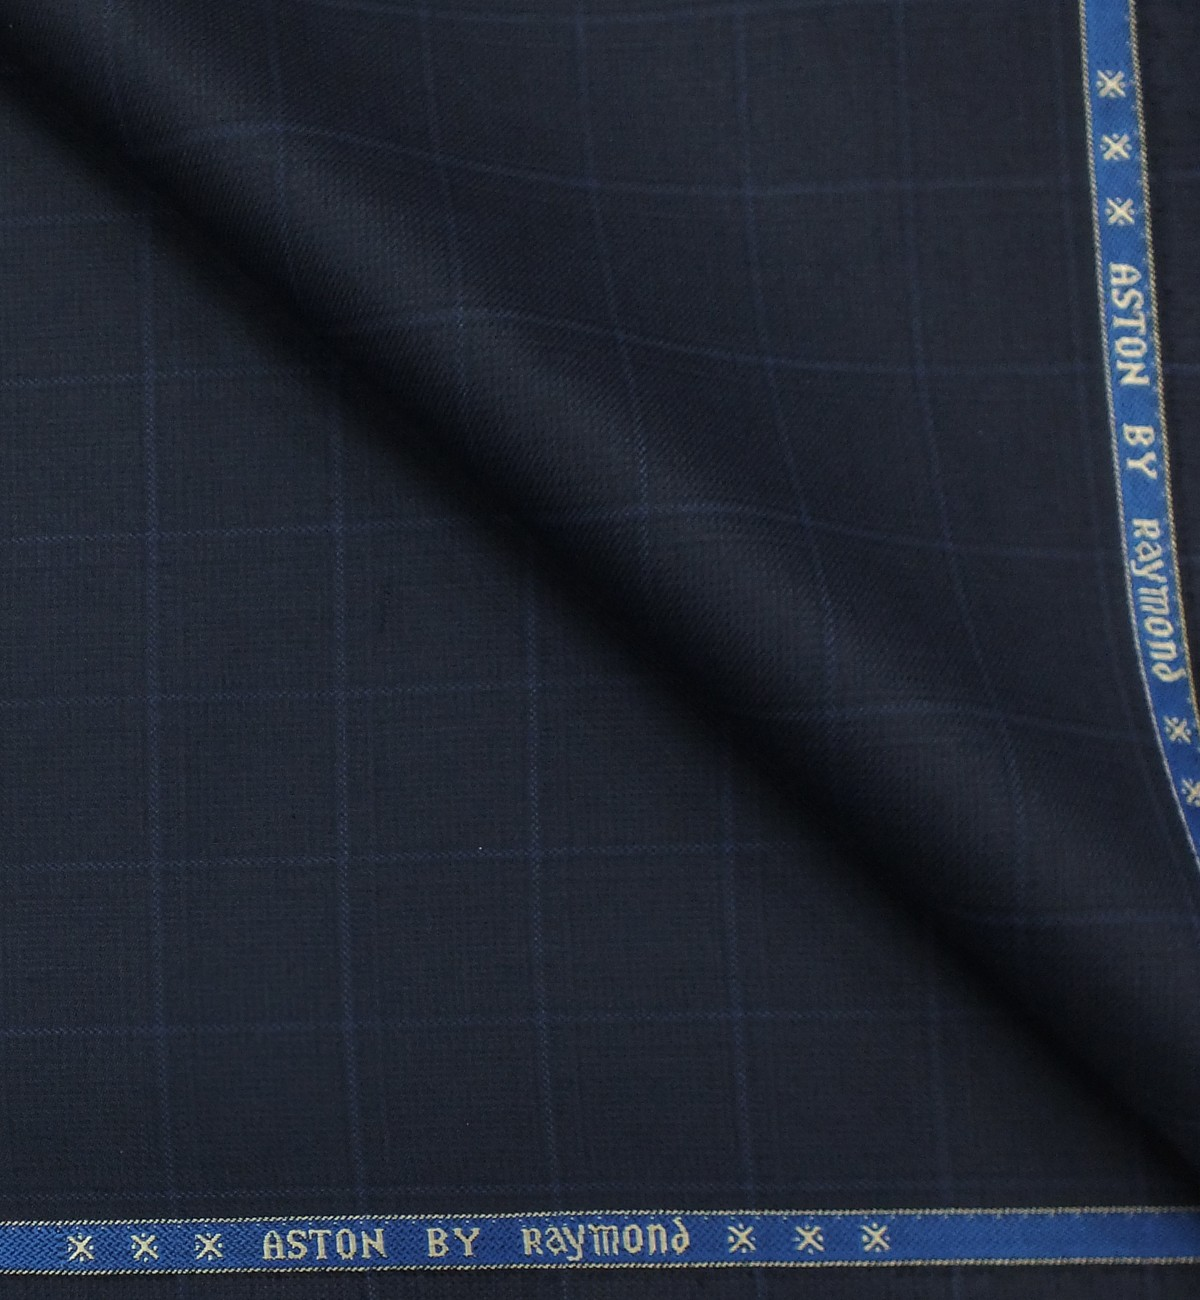 fbf45a92b Raymond Royal Blue Broad Check Unstitched Trouser Fabric